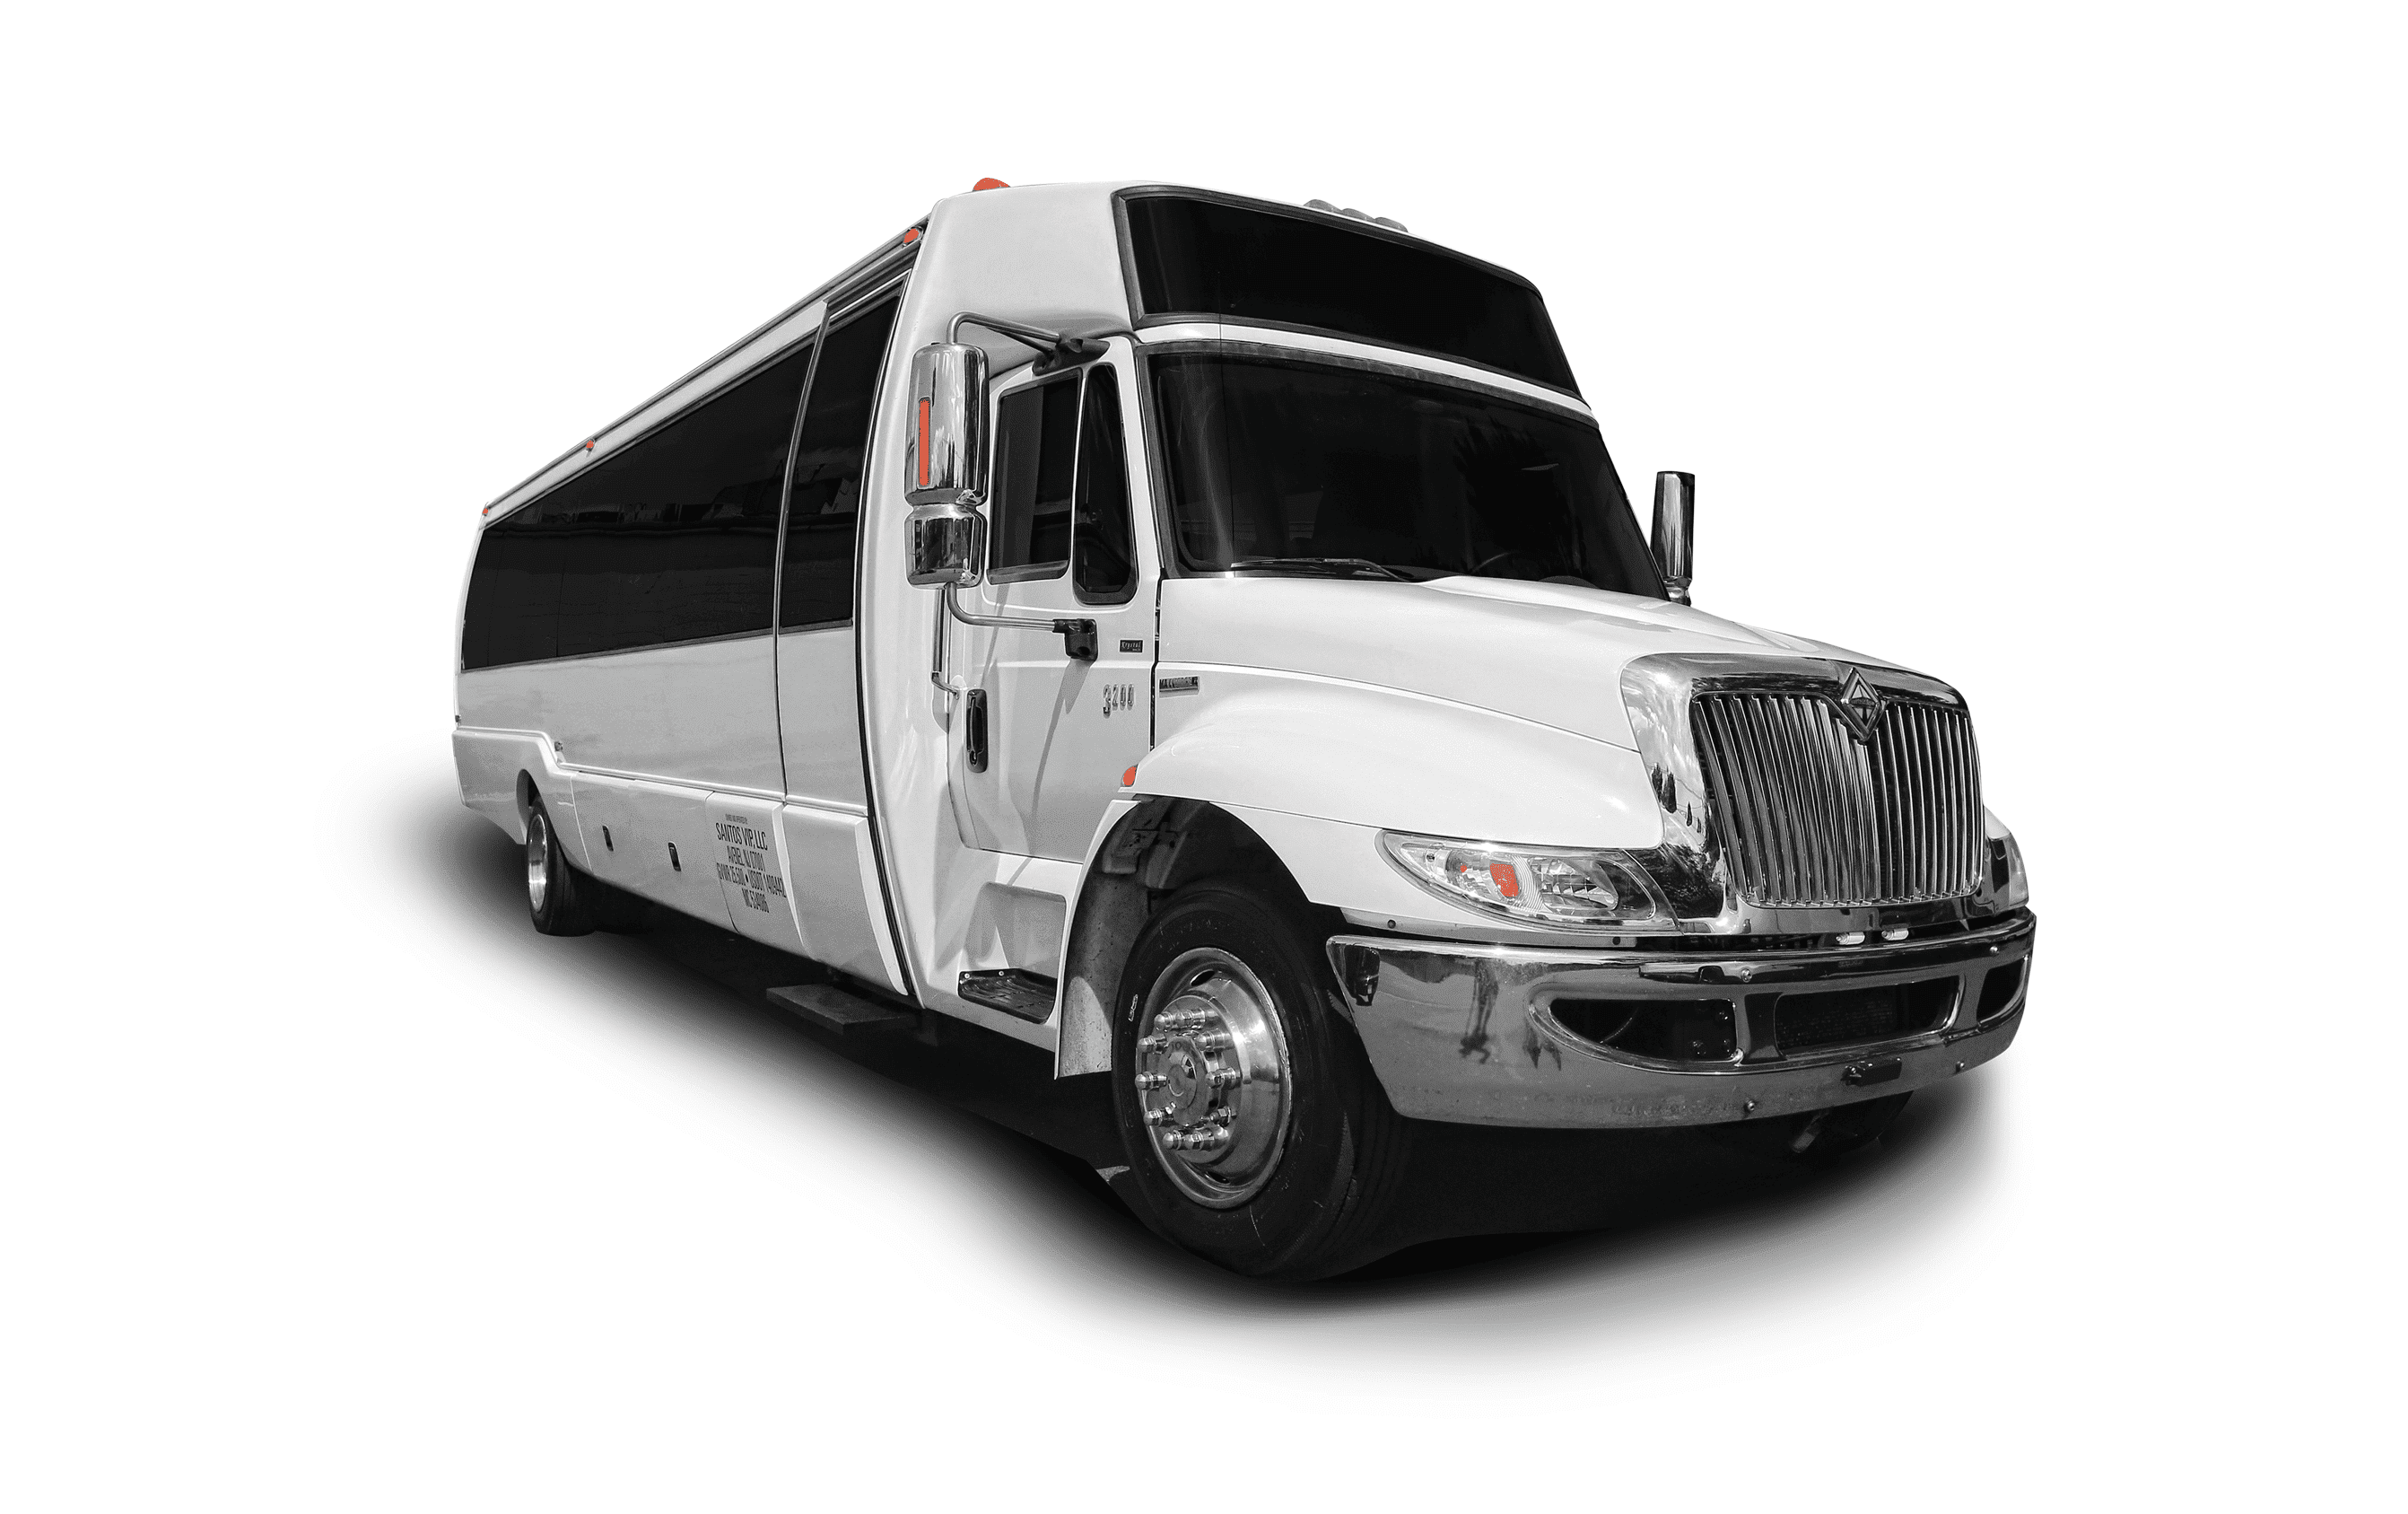 28 passenger Limo Coach Party Bus Rental in NJ - NY